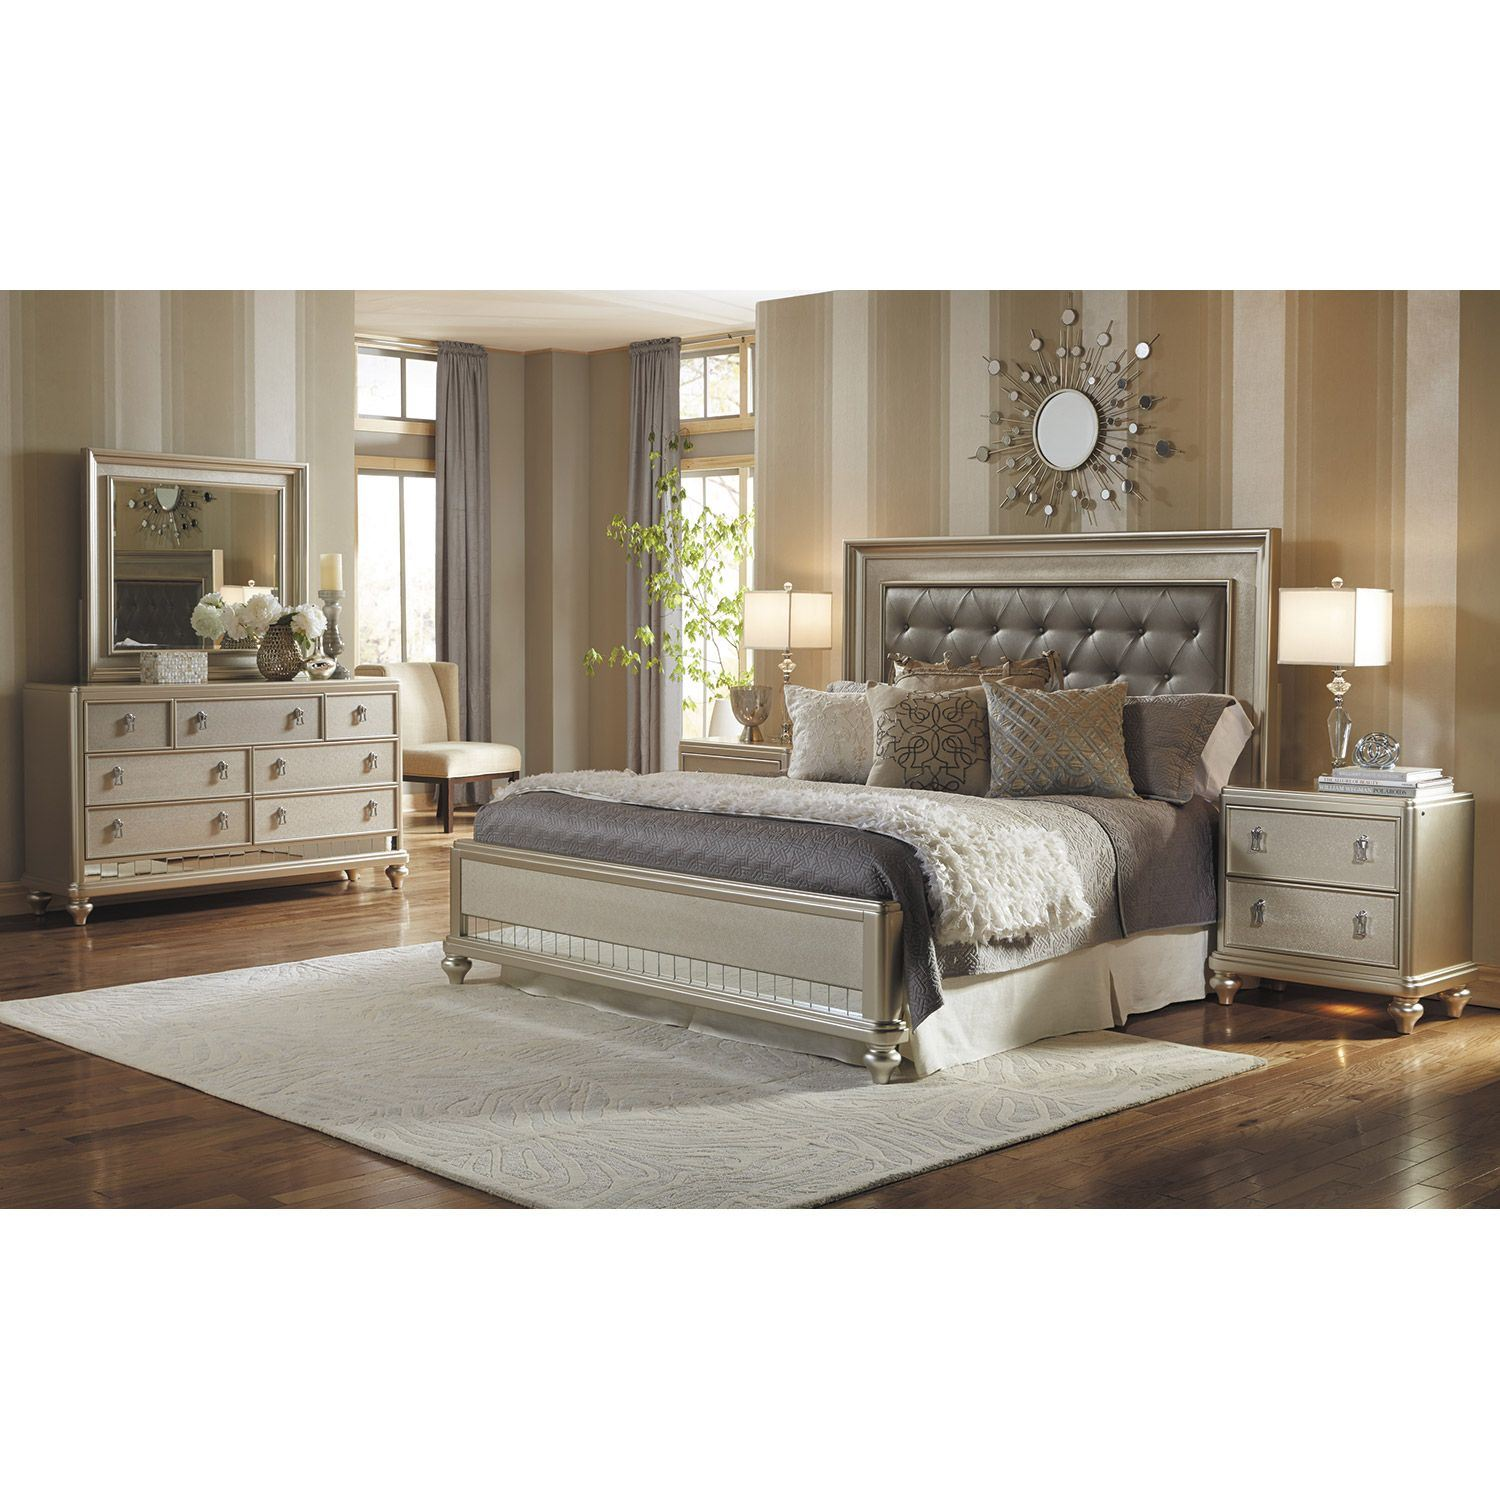 Picture of Diva King Bed